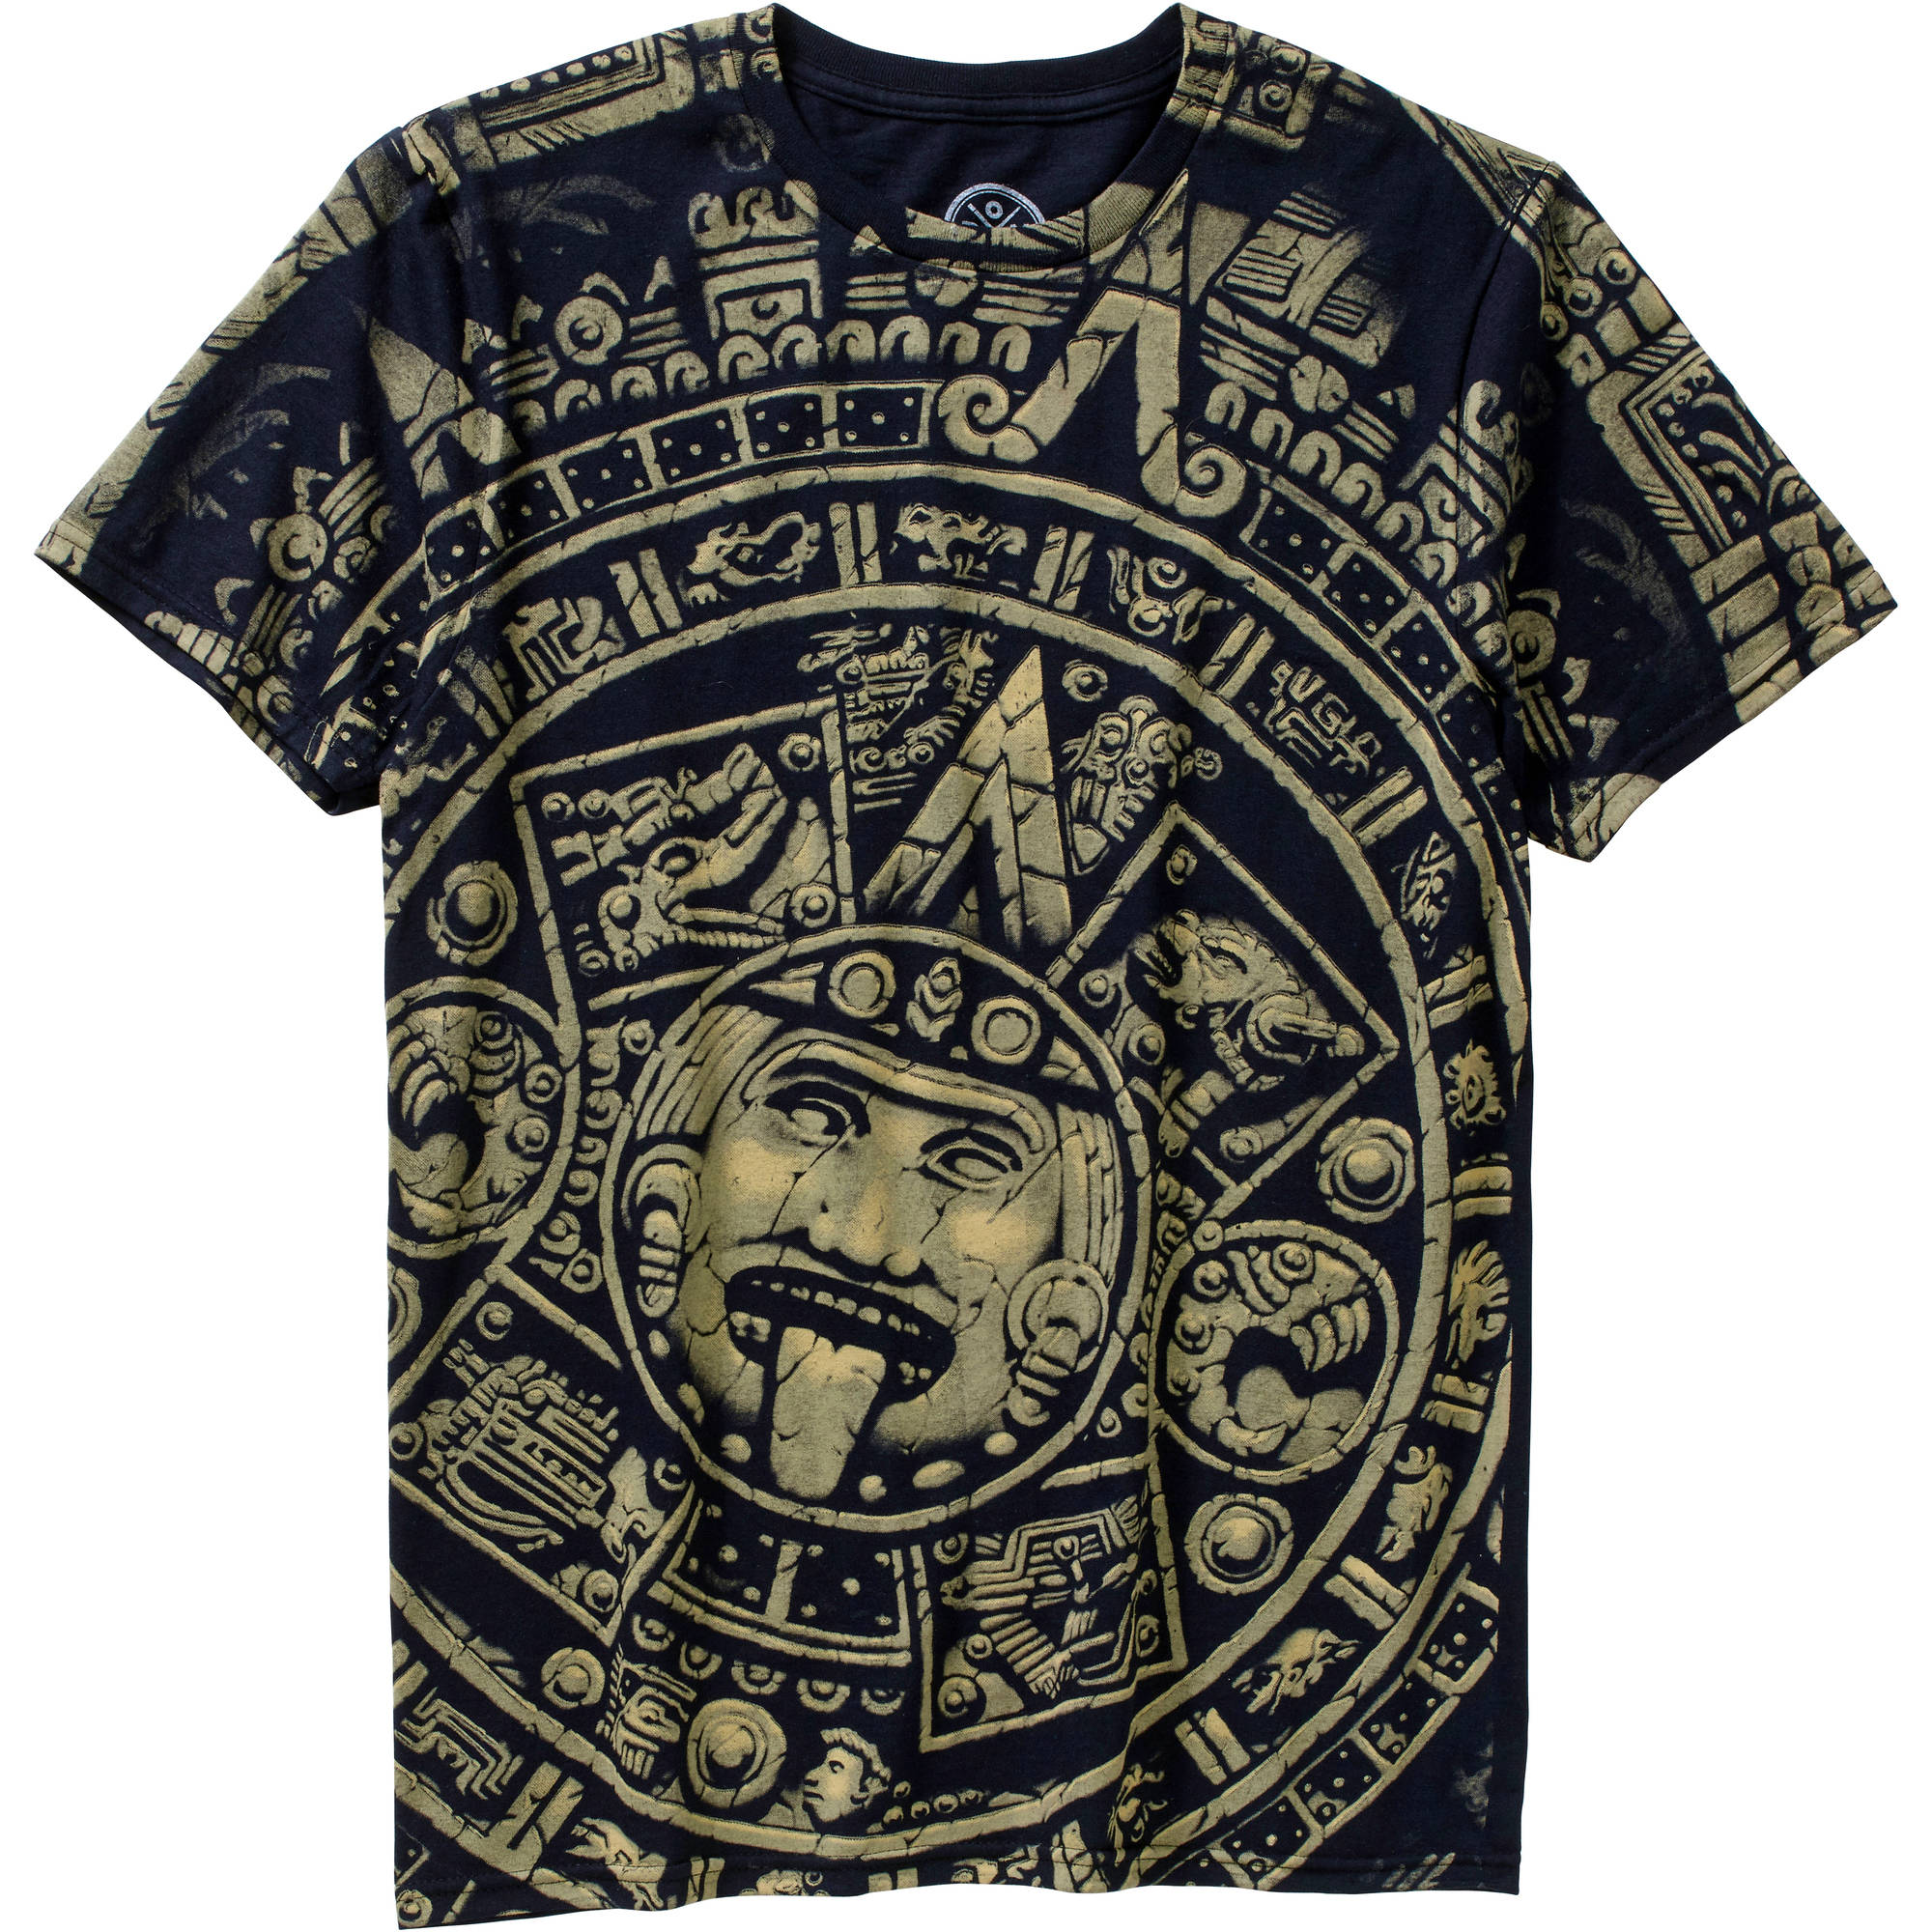 Calendar Big Men's Graphic Tee